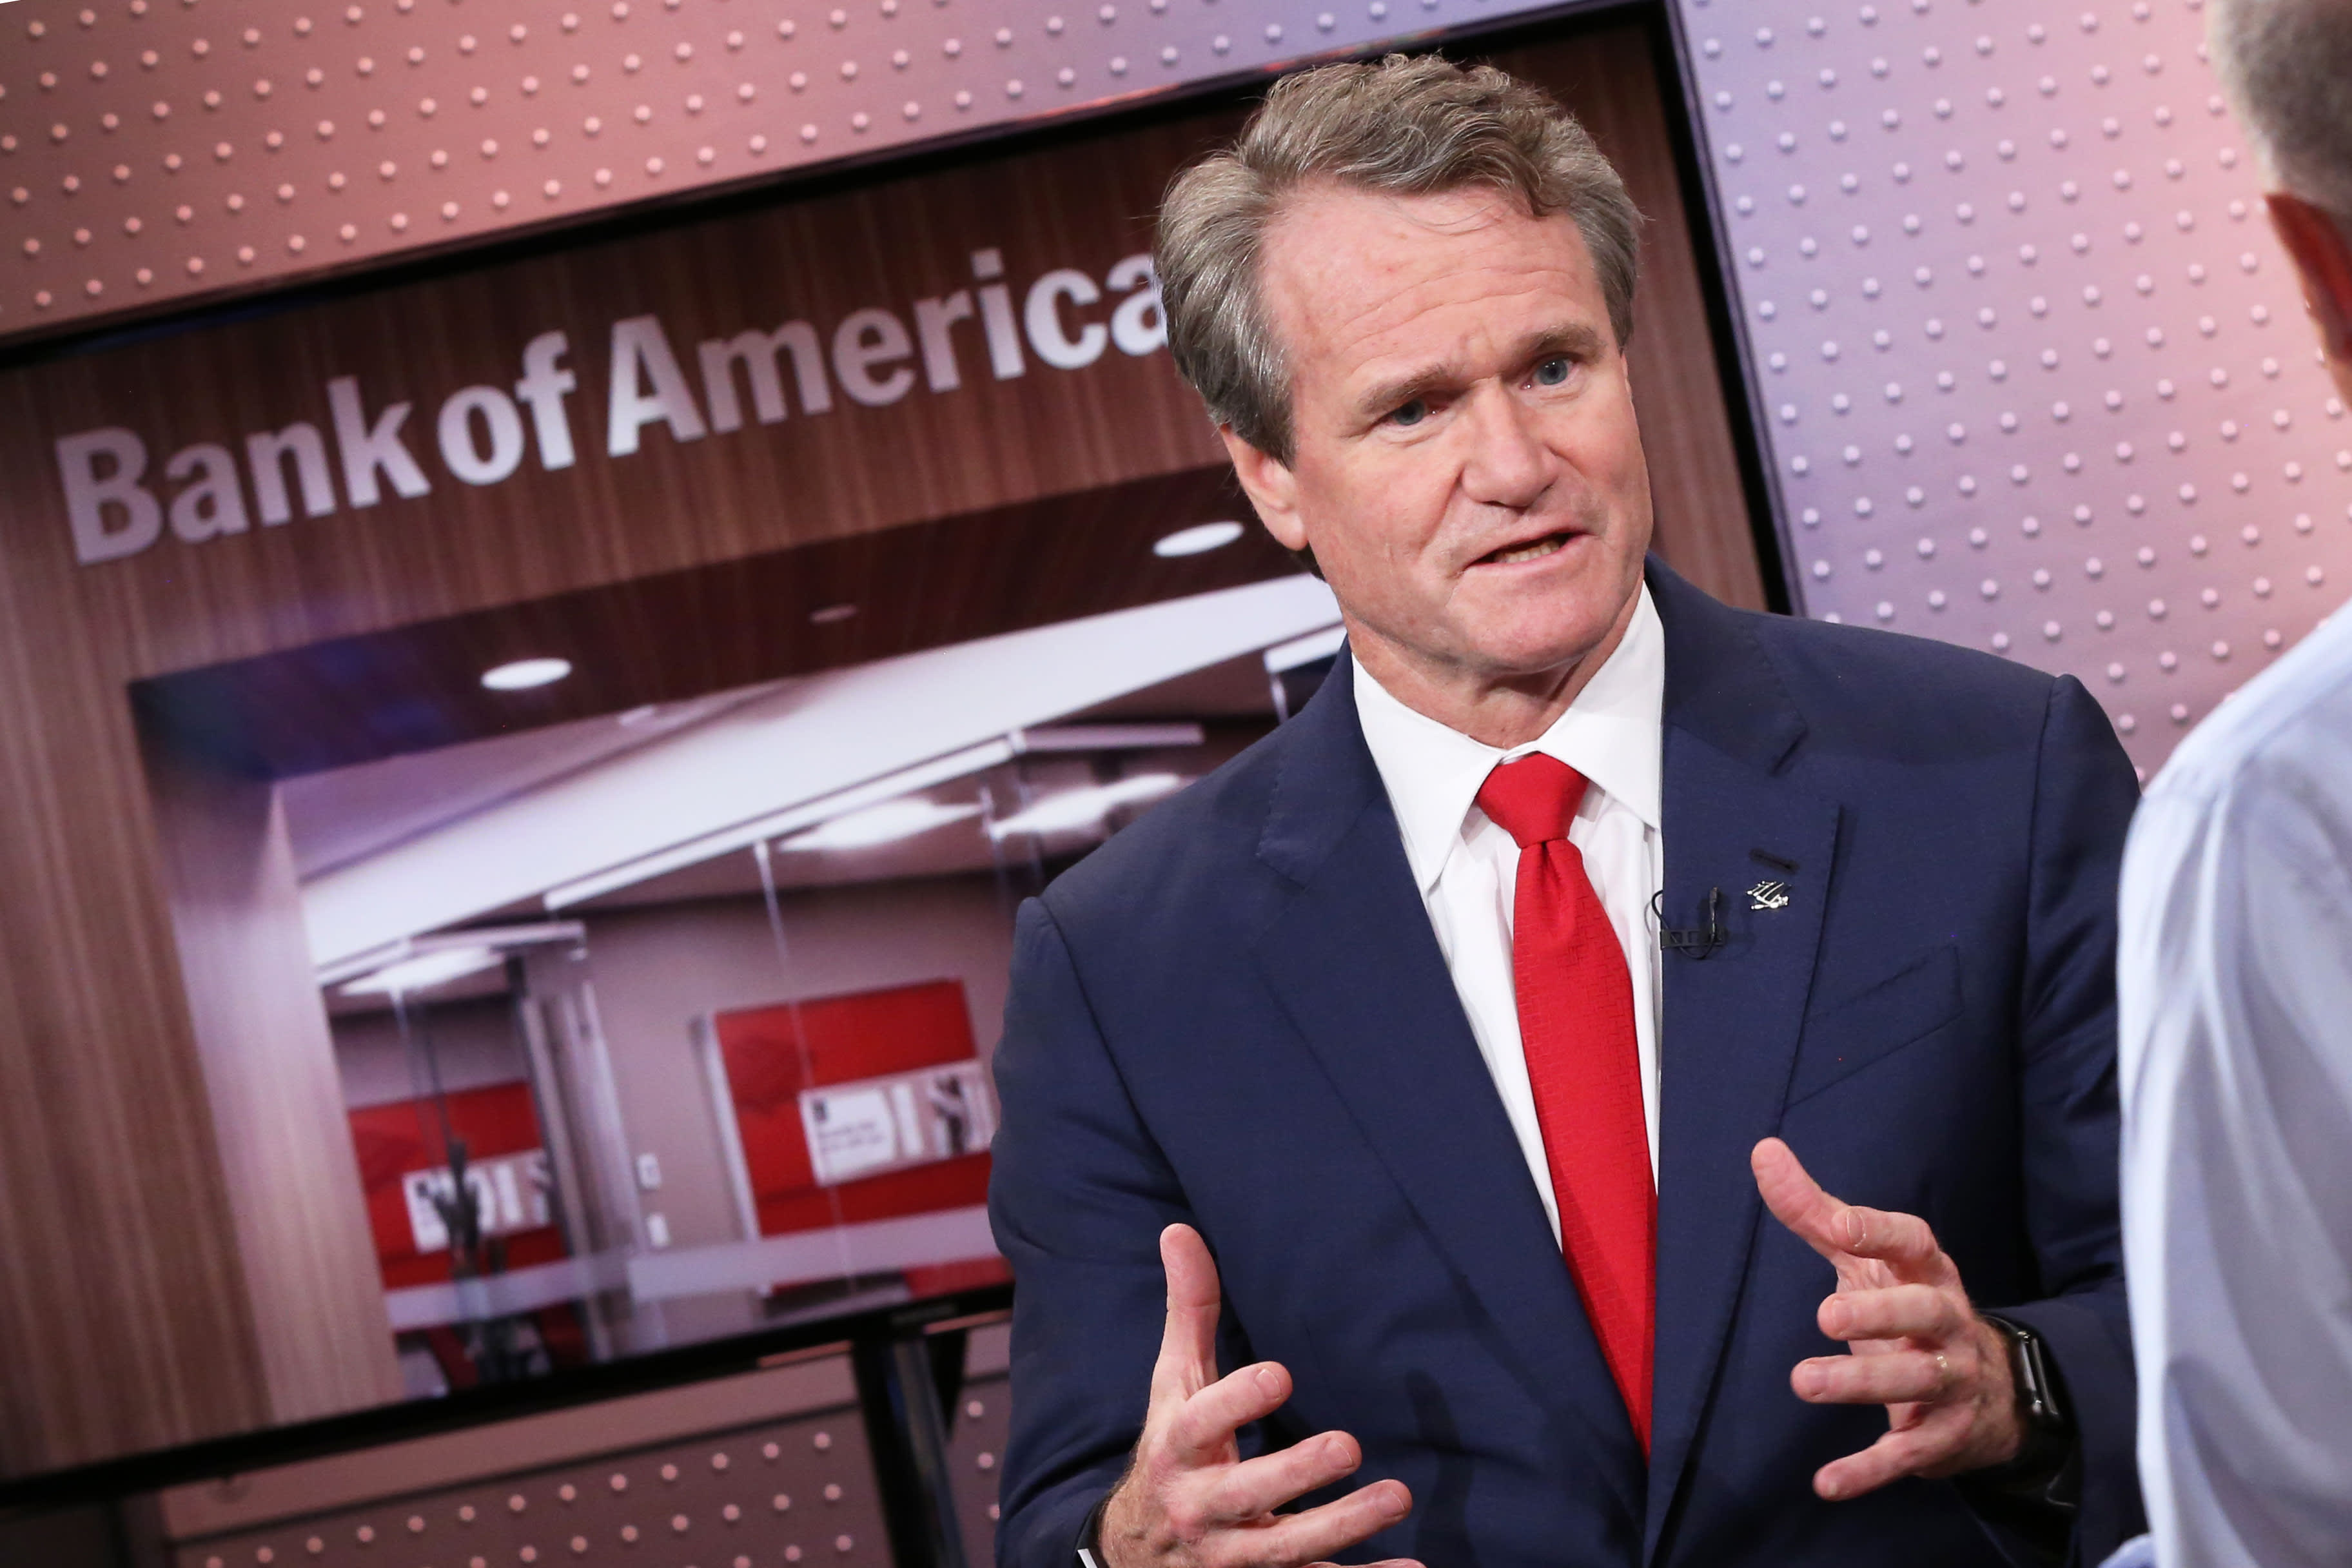 Bank of America CEO Brian Moynihan says confident consumers are spending 5.5% more this year